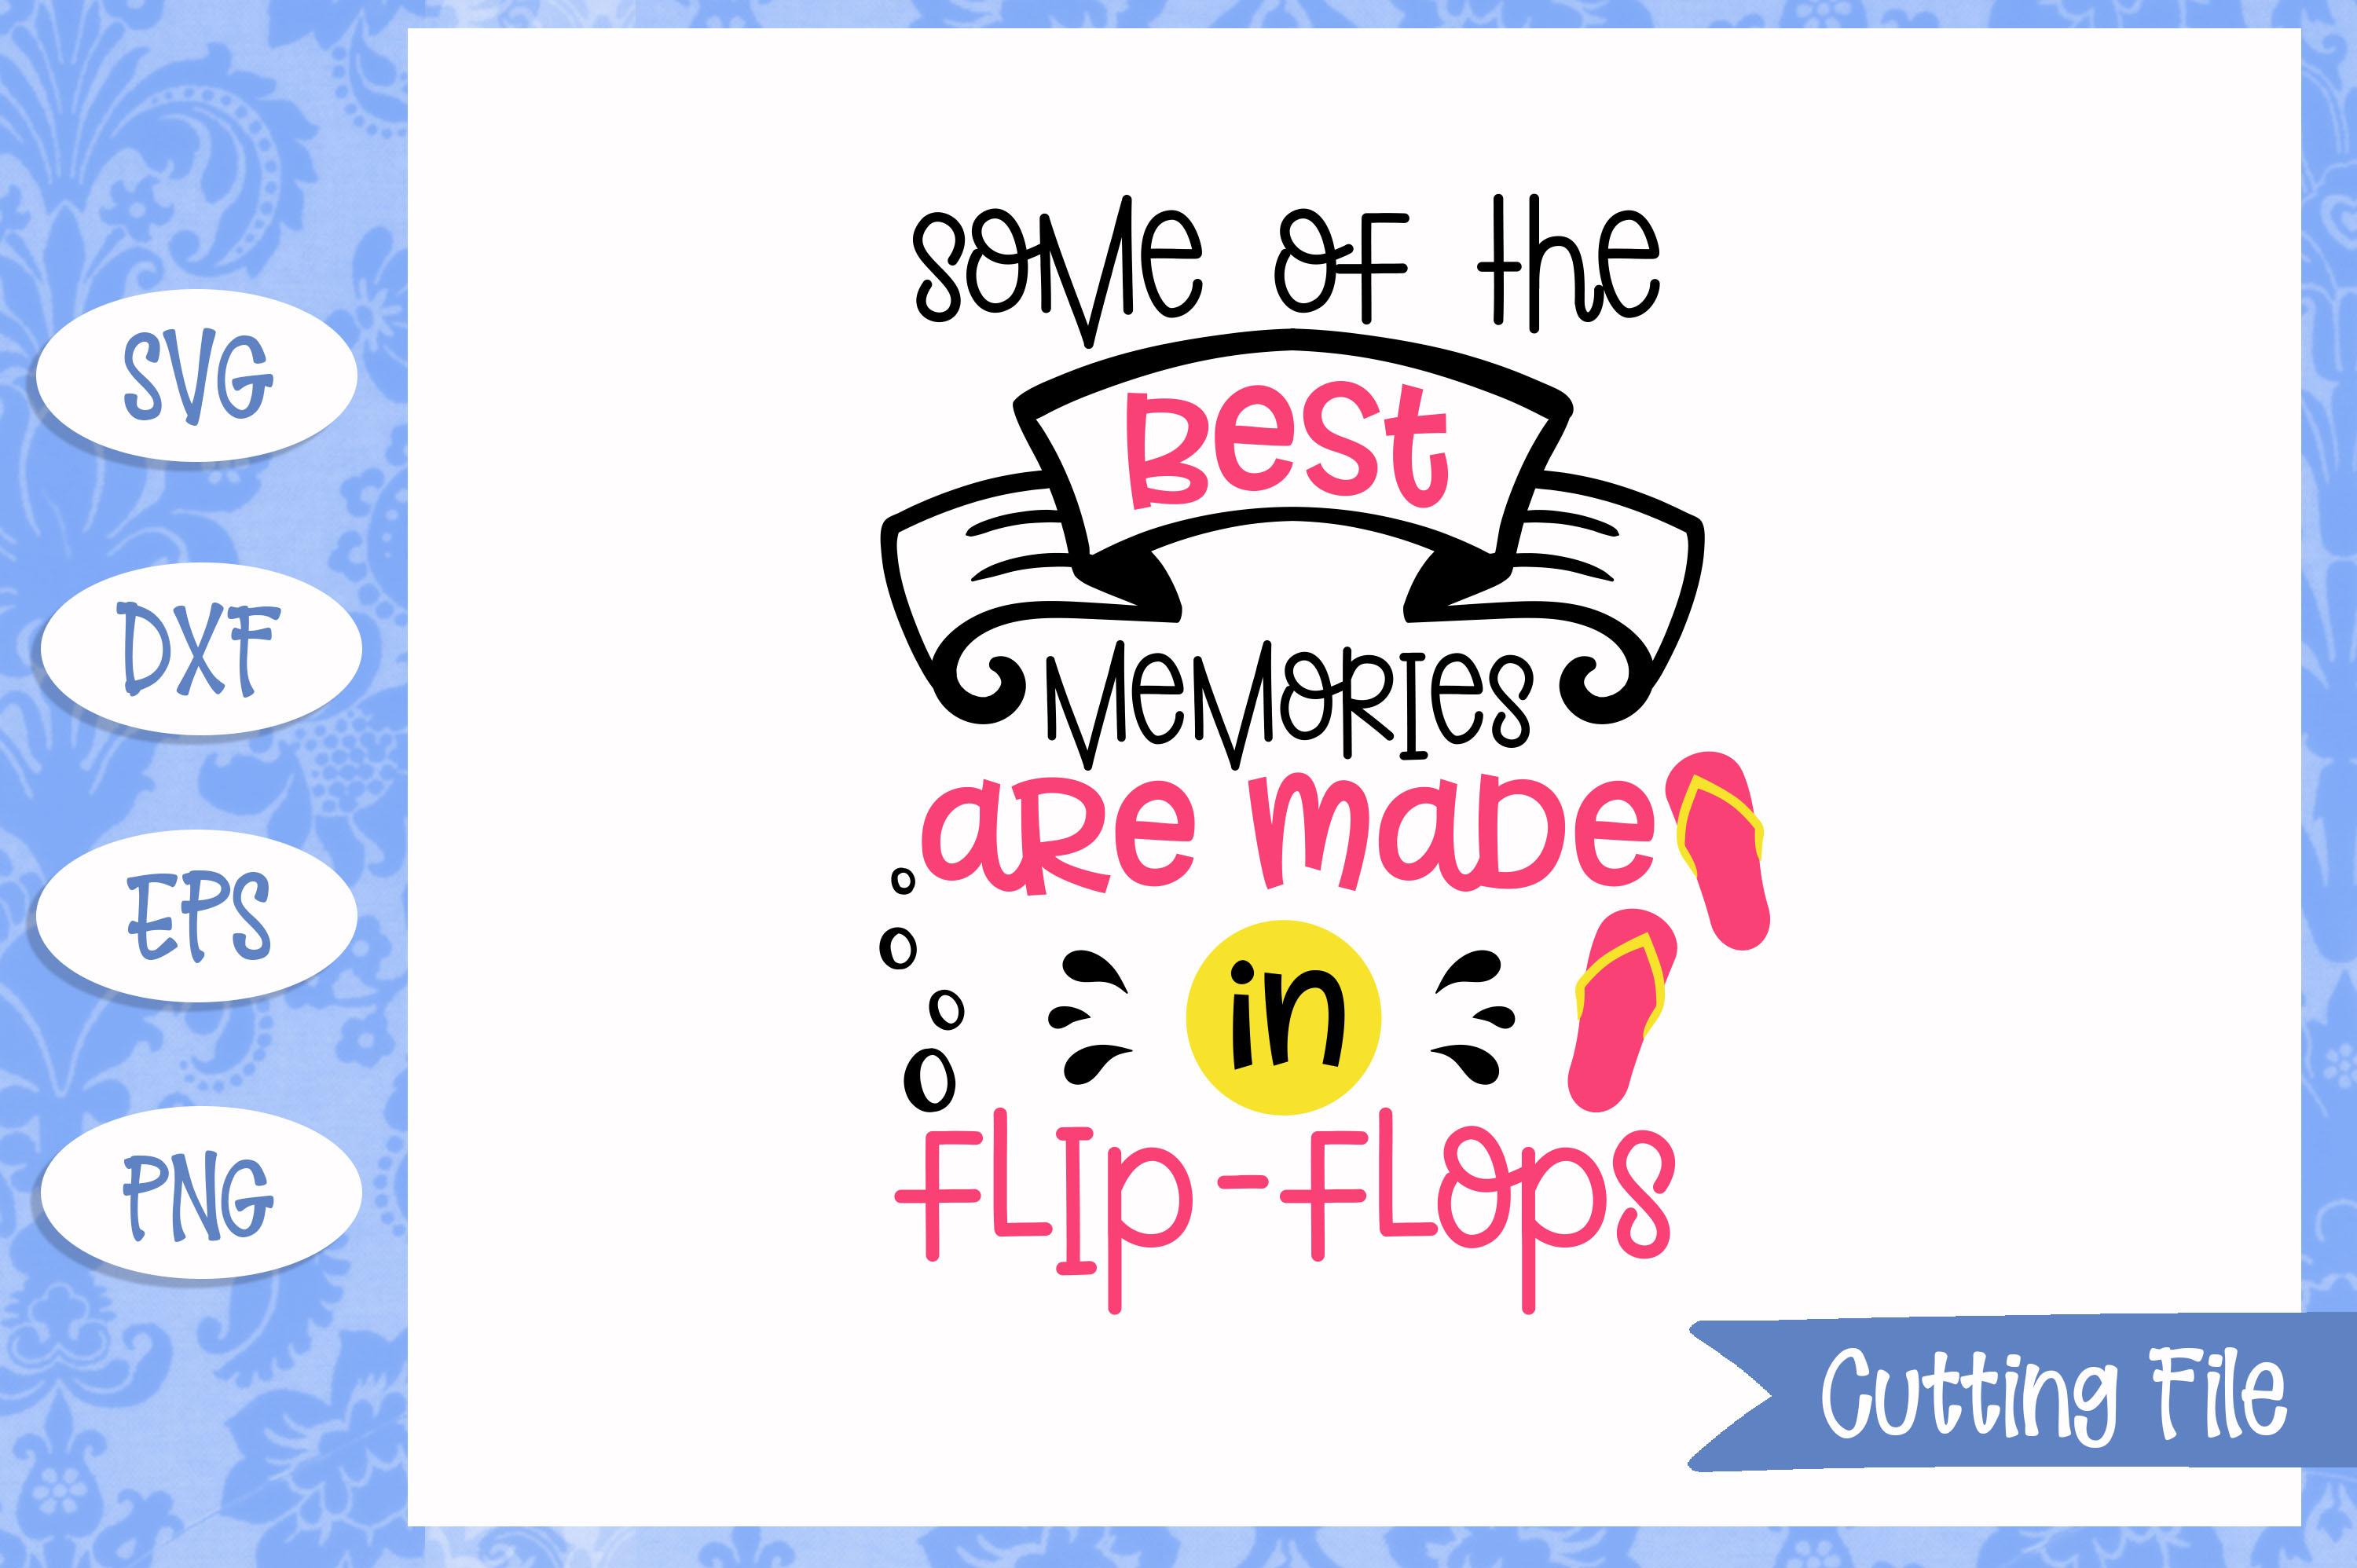 Some of the best memories are made in flip flops SVG File example image 1